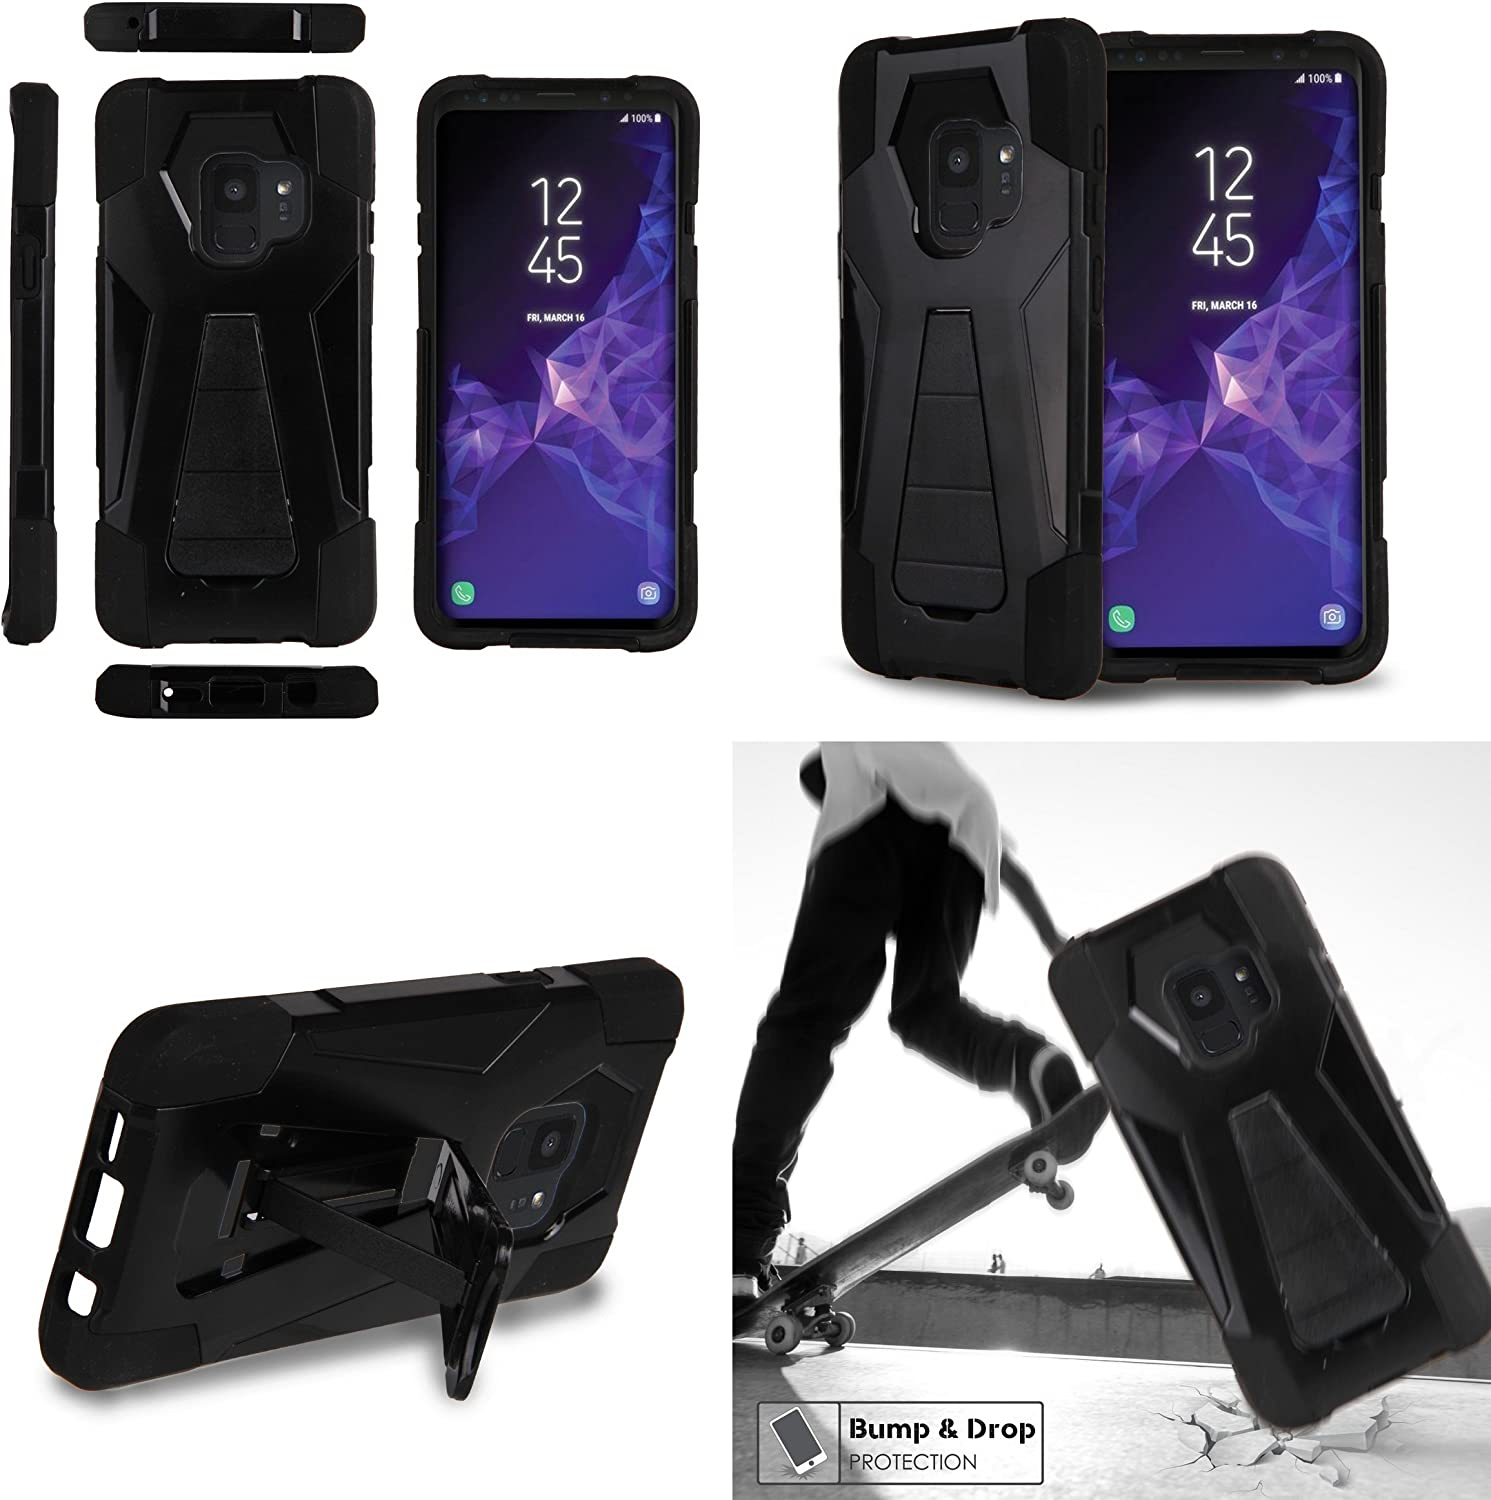 USB Type C 4 Foot Impact Resilient Bundle: Dual Layer Vintage Mexico Cable 90 Degree // Right Angle Samsung Galaxy S9 Protective Kickstand Case , Atom Cloth USB-C